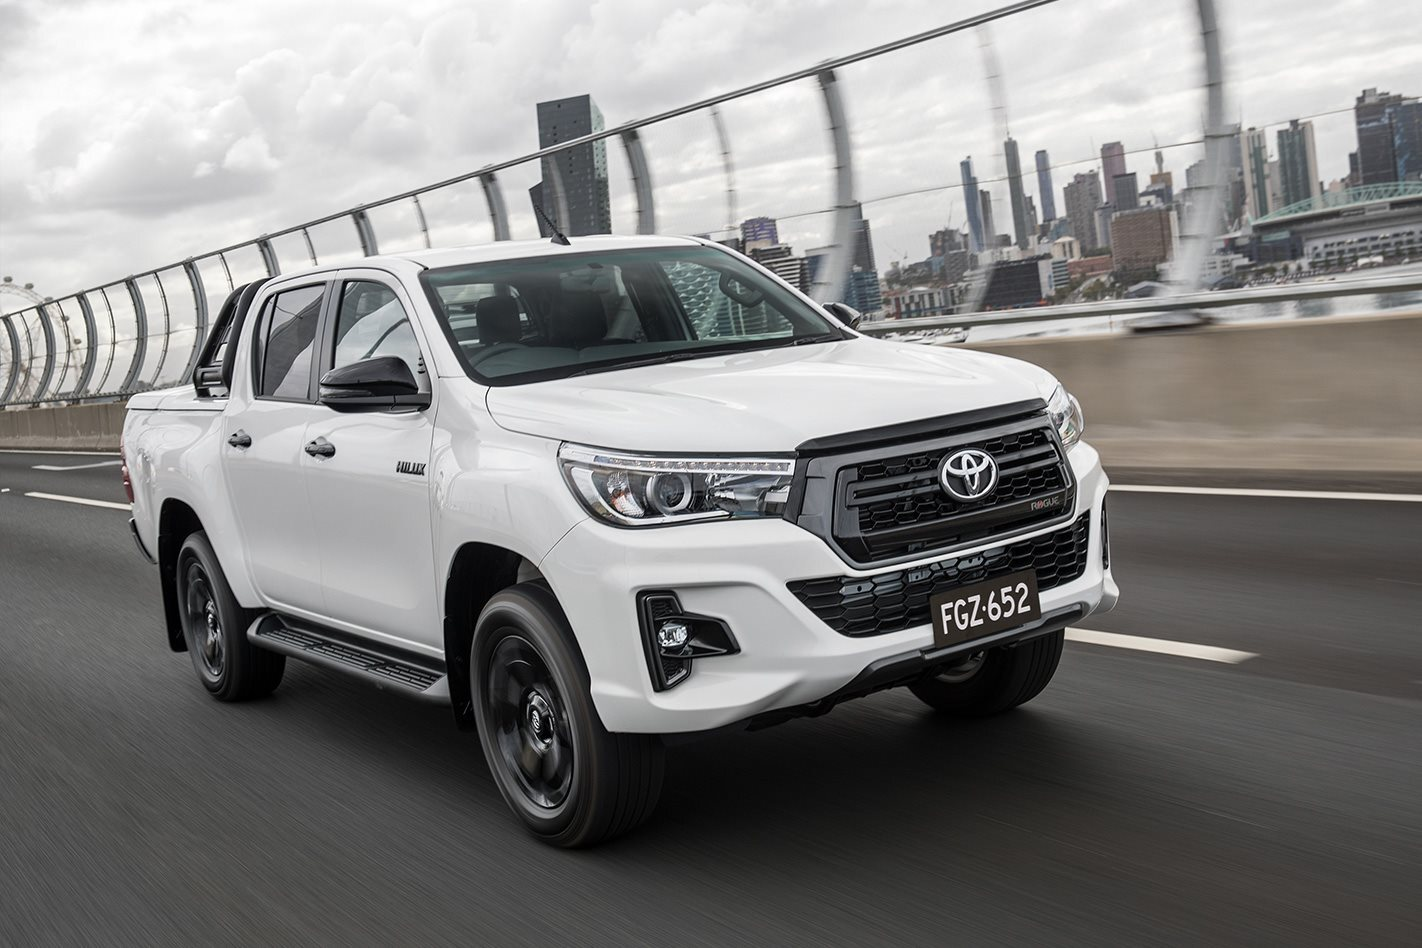 Toyota Hilux Review: What to Know